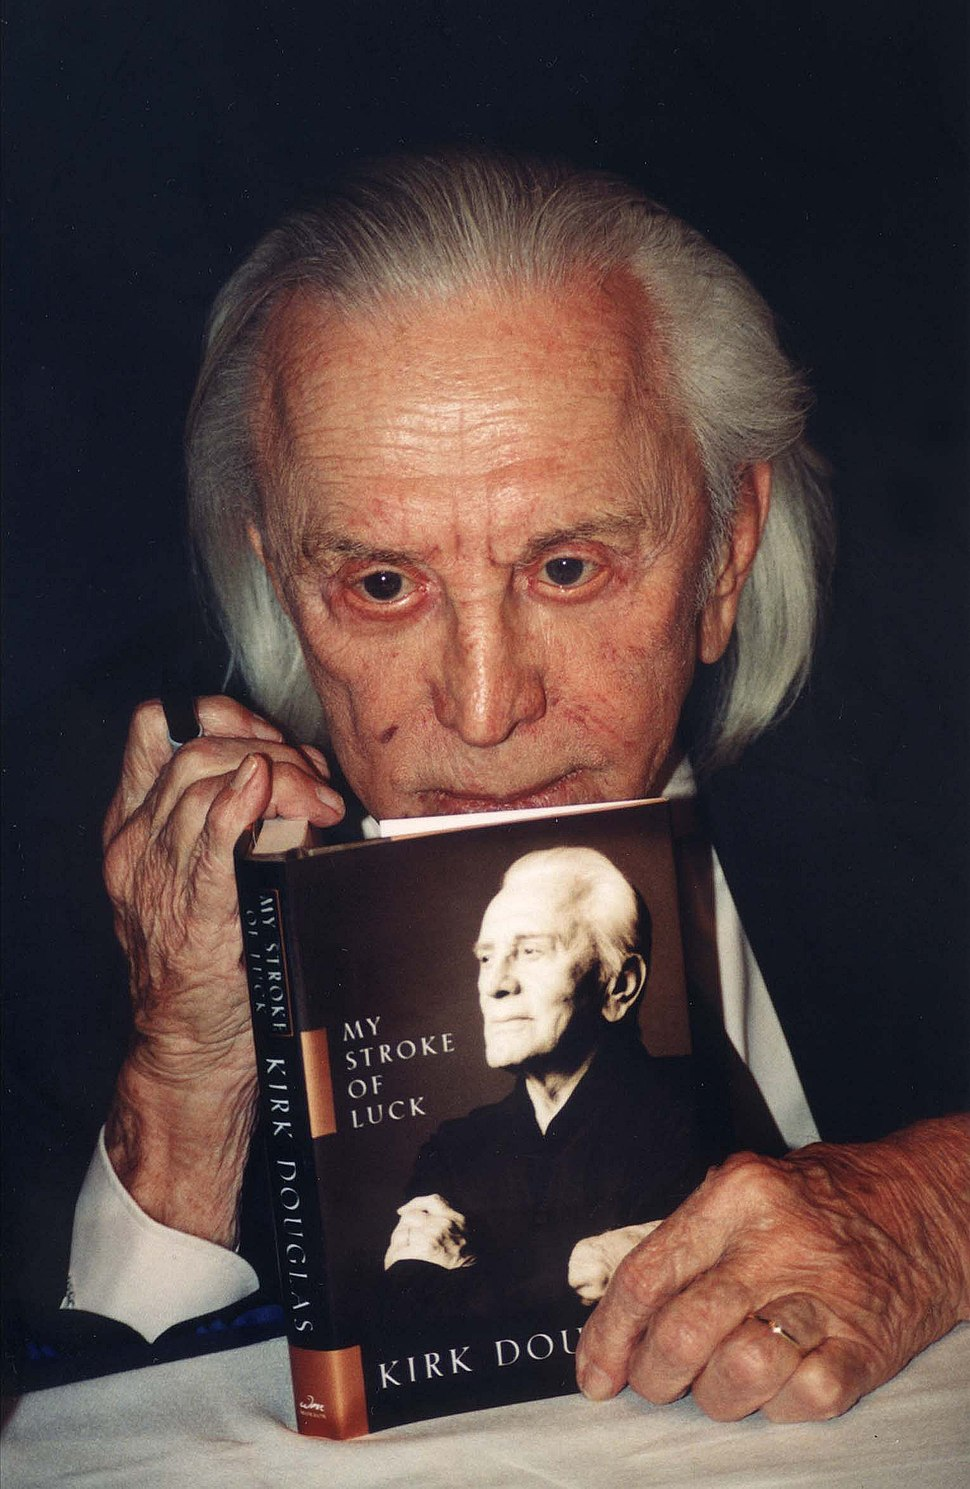 Kirk Douglas with book 2002